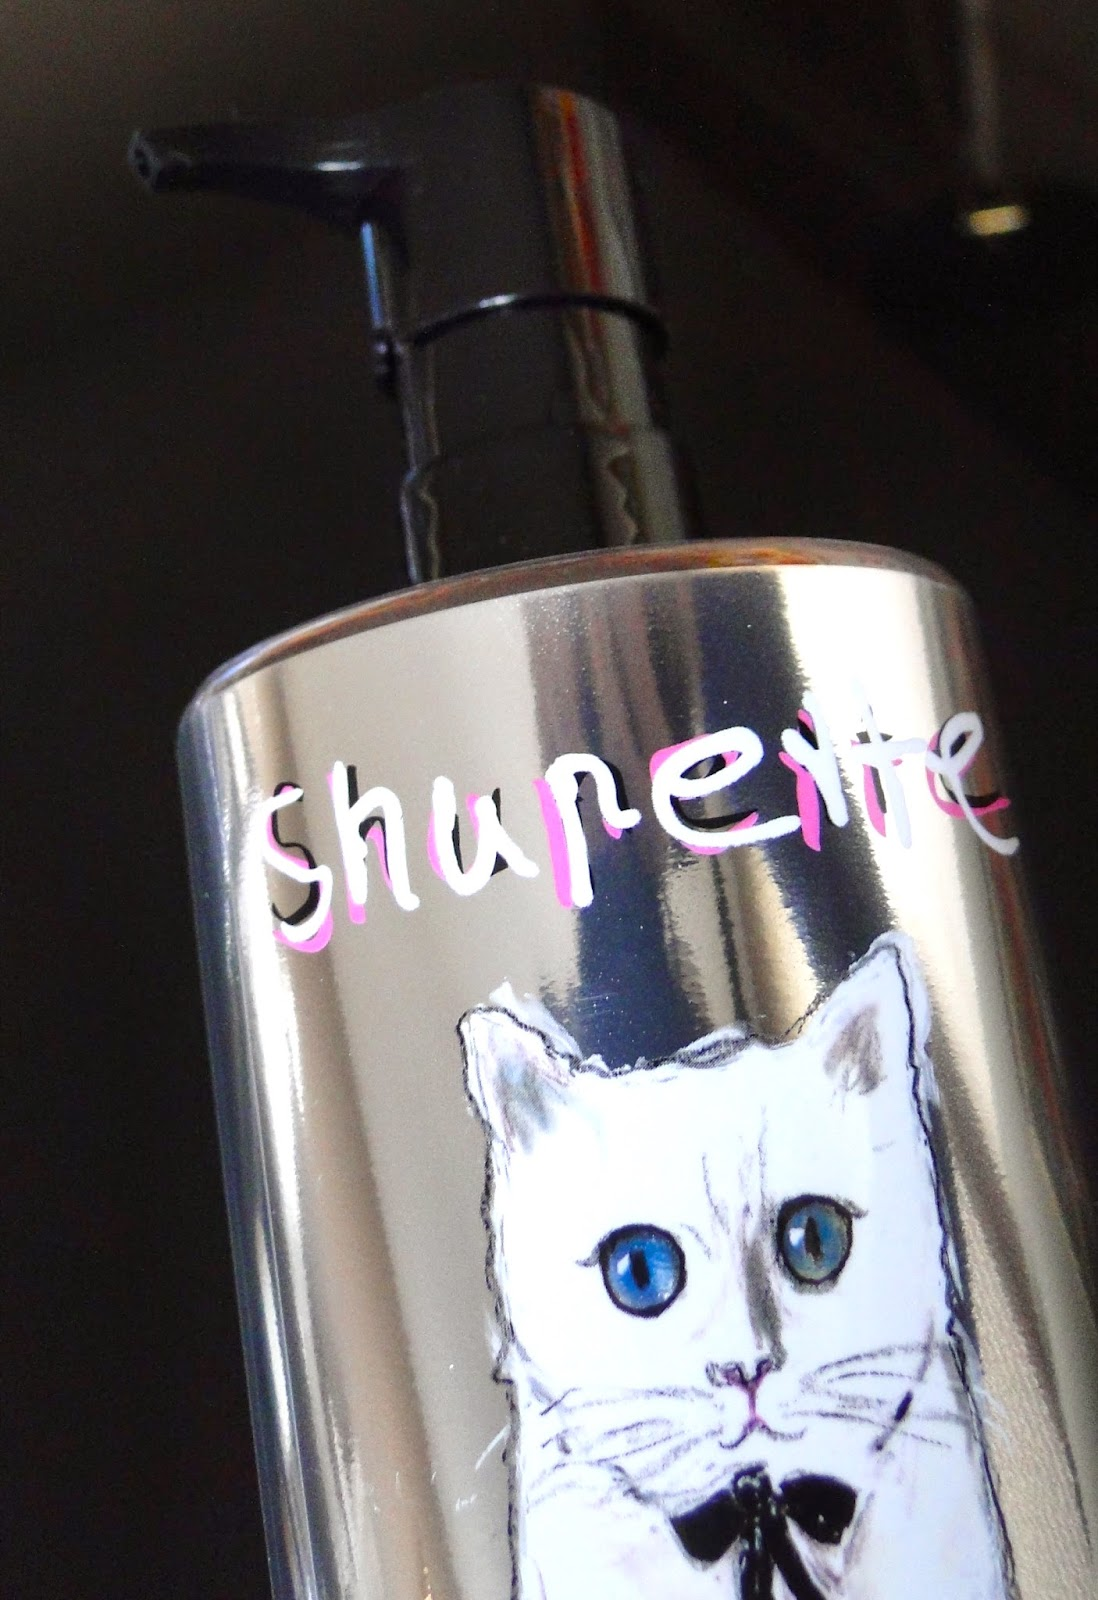 Shupette Karl Lagerfed Shu Uemura Make Up Collection